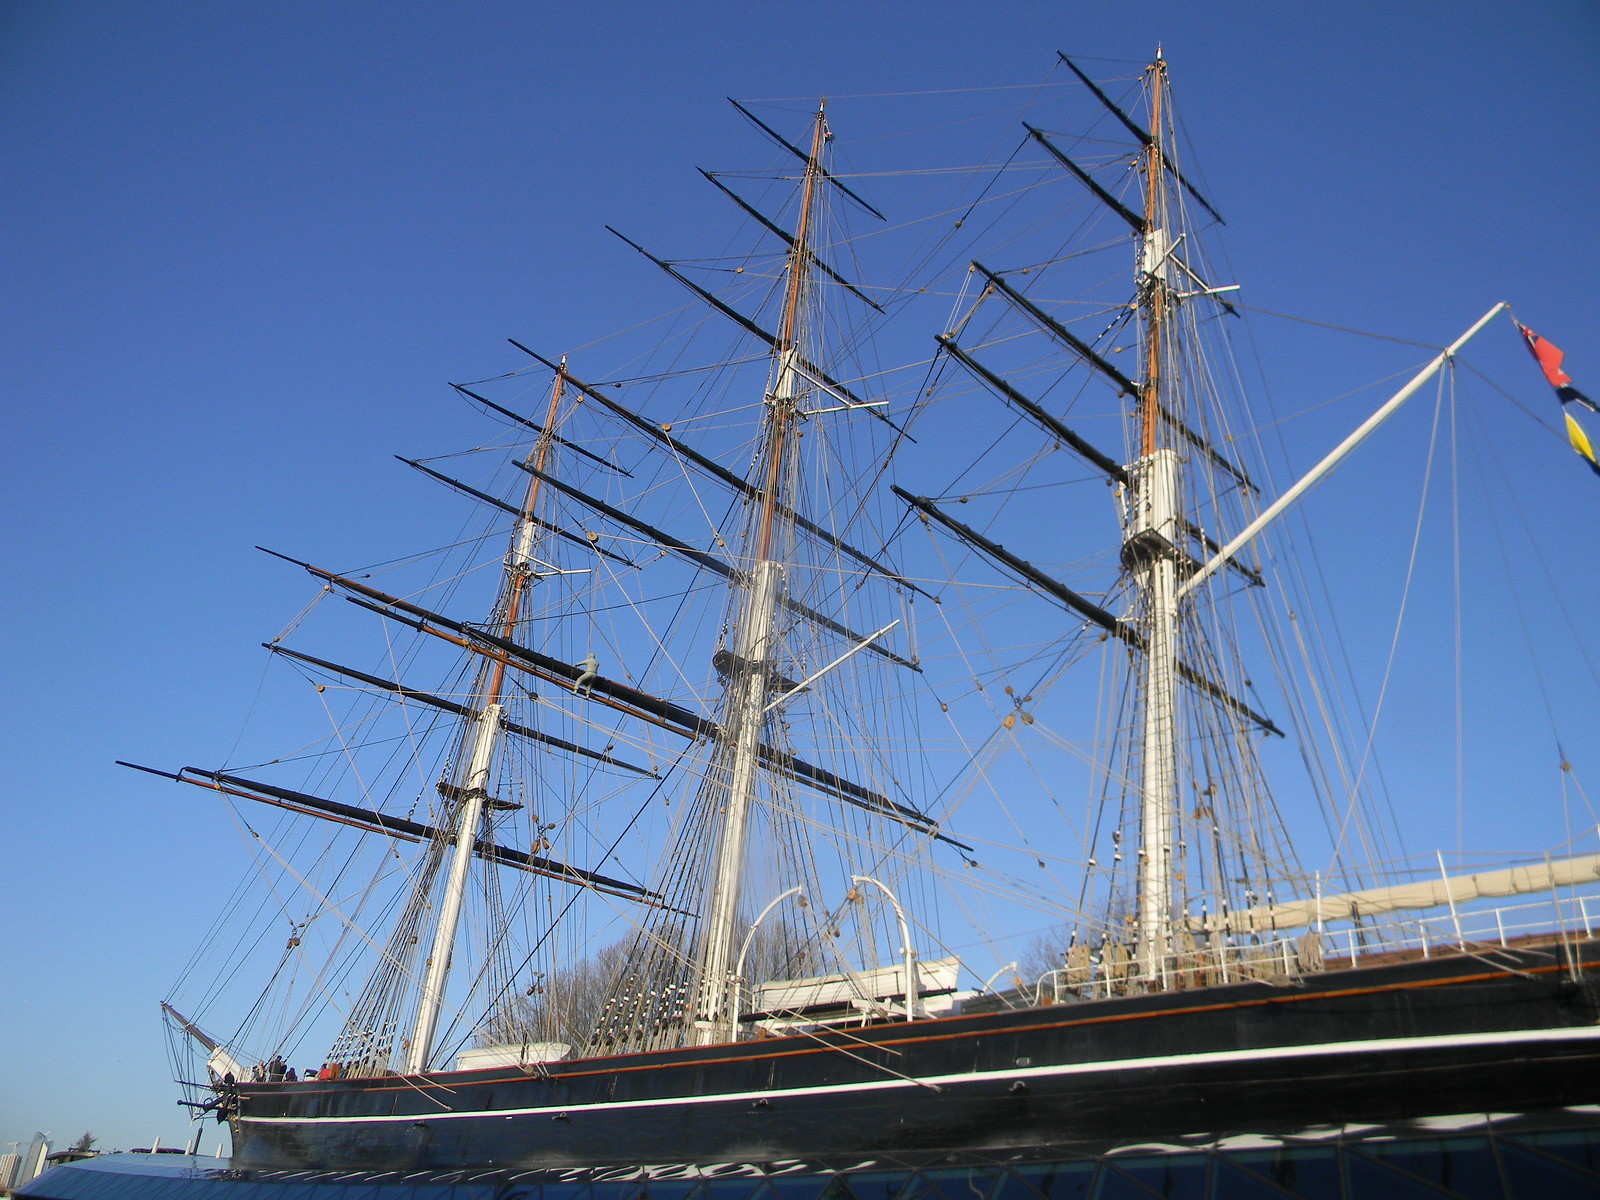 Cutty Sark Blackheath to Canary Wharf